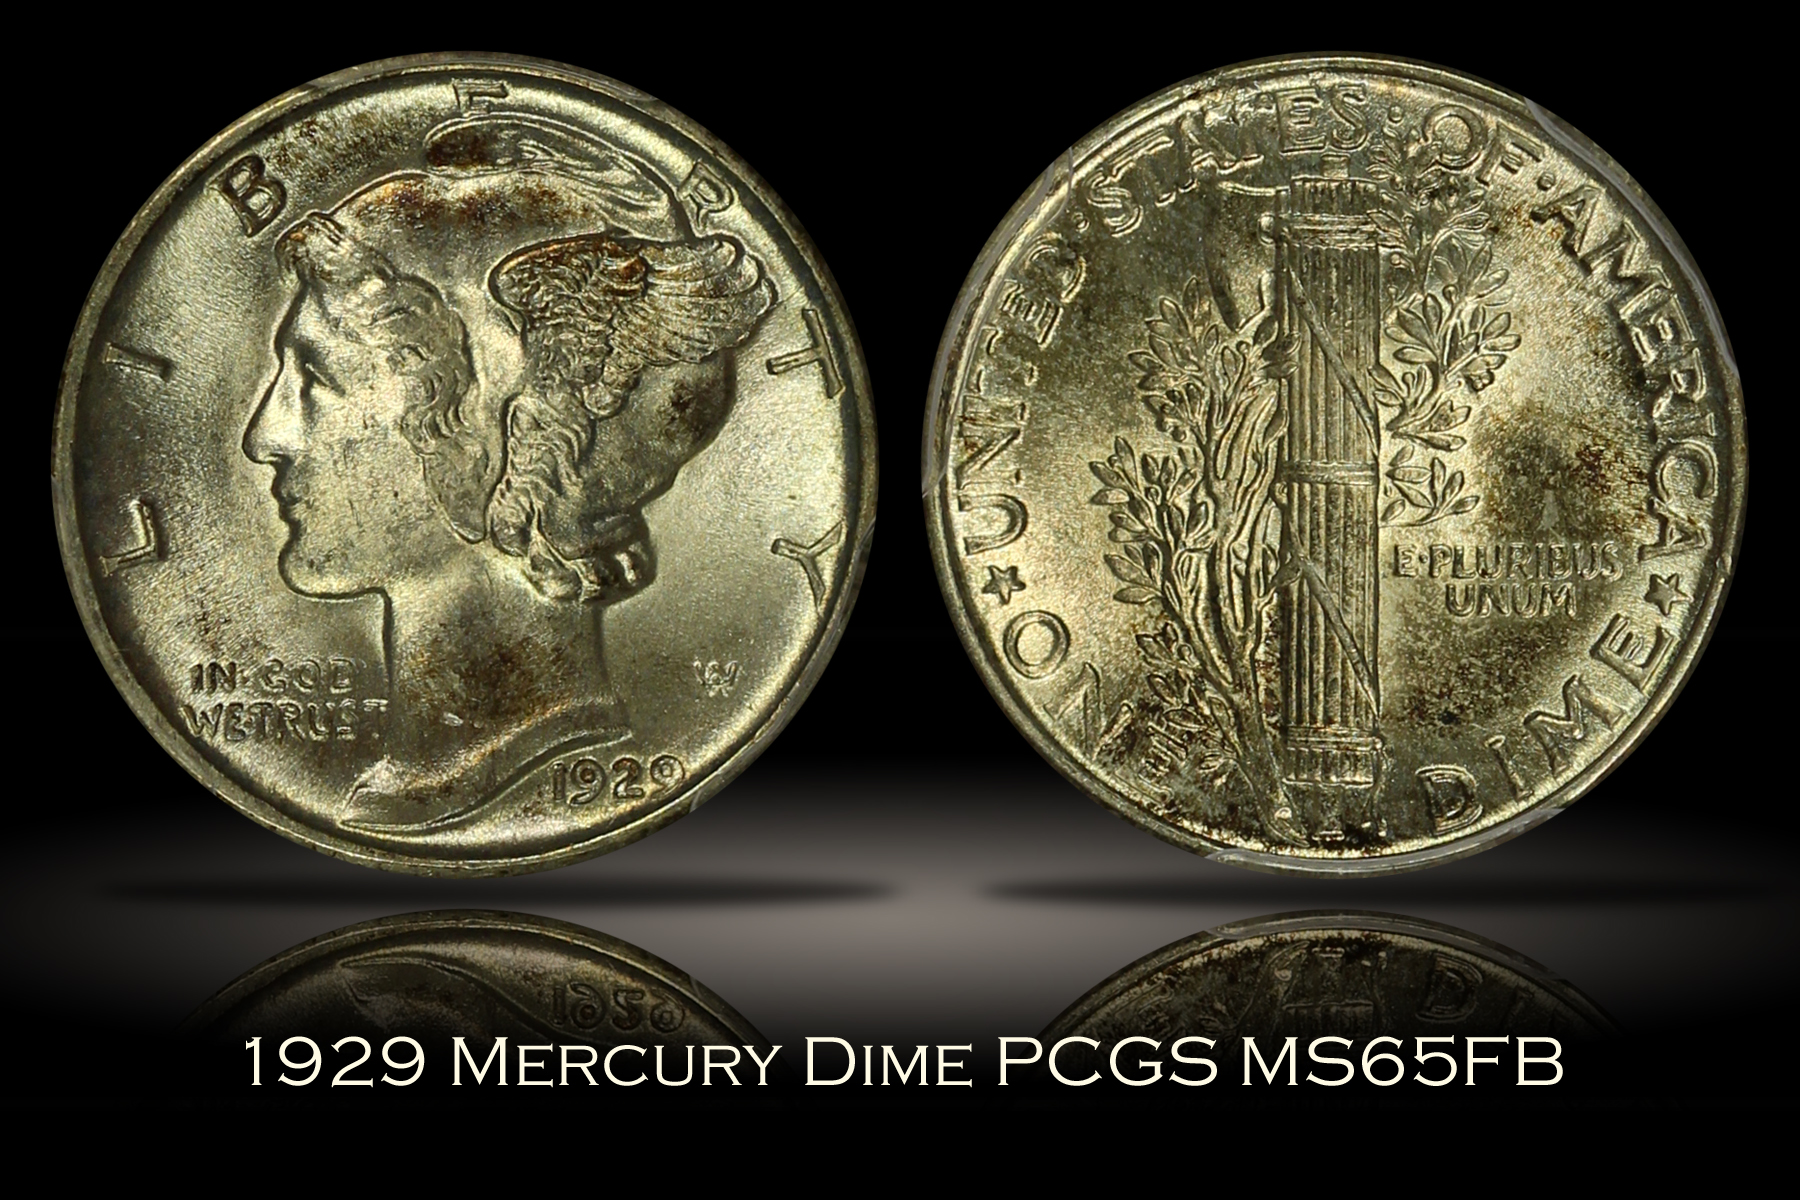 1929 Mercury Dime PCGS MS65FB